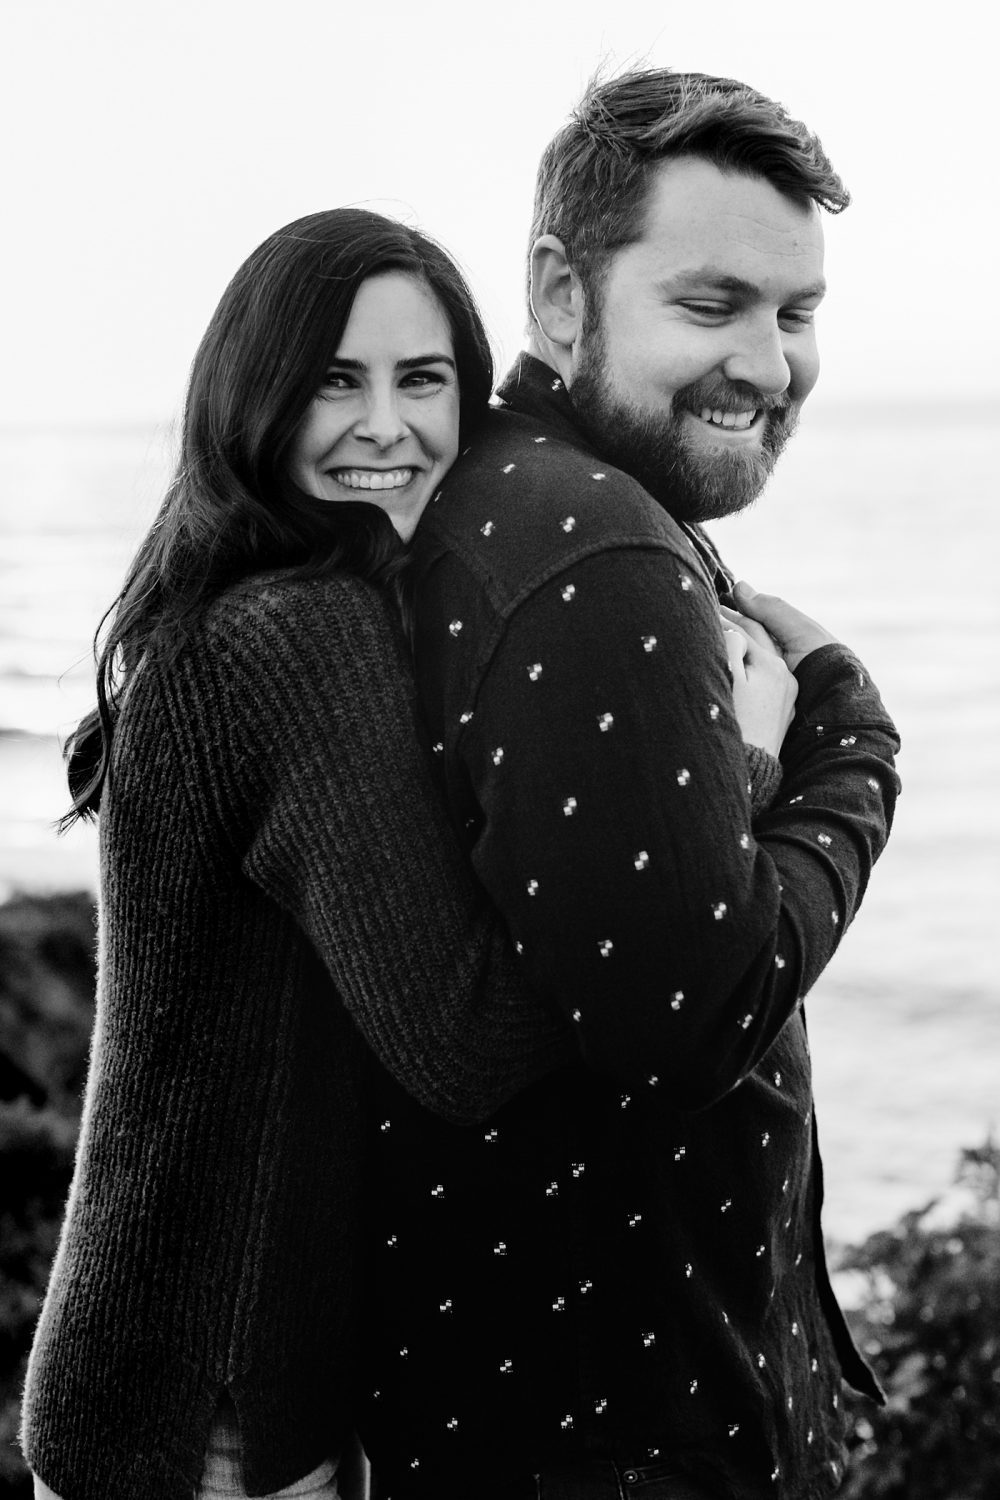 Candid engagement photo pose inspiration